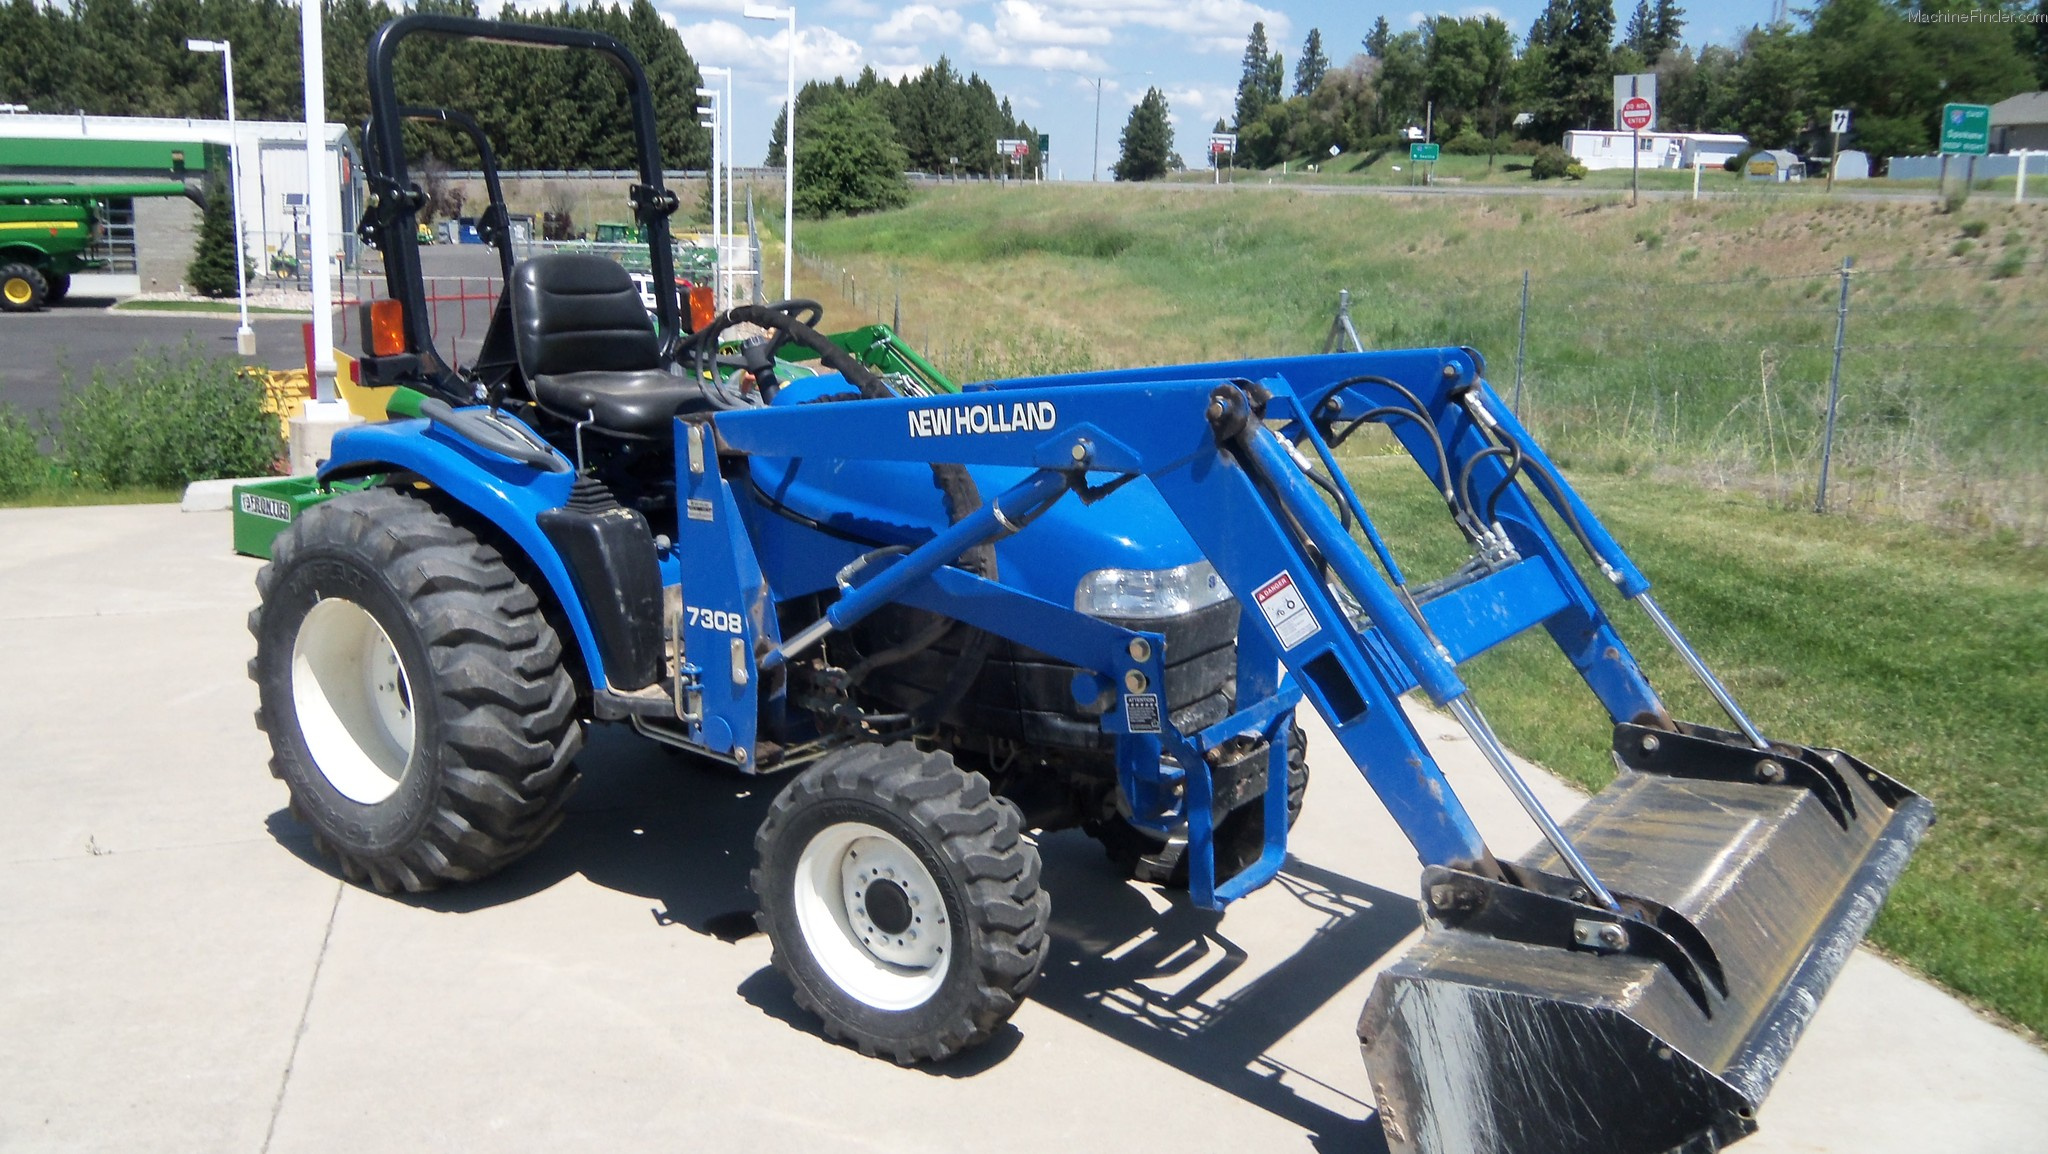 New Holland 7308 loader Manual on